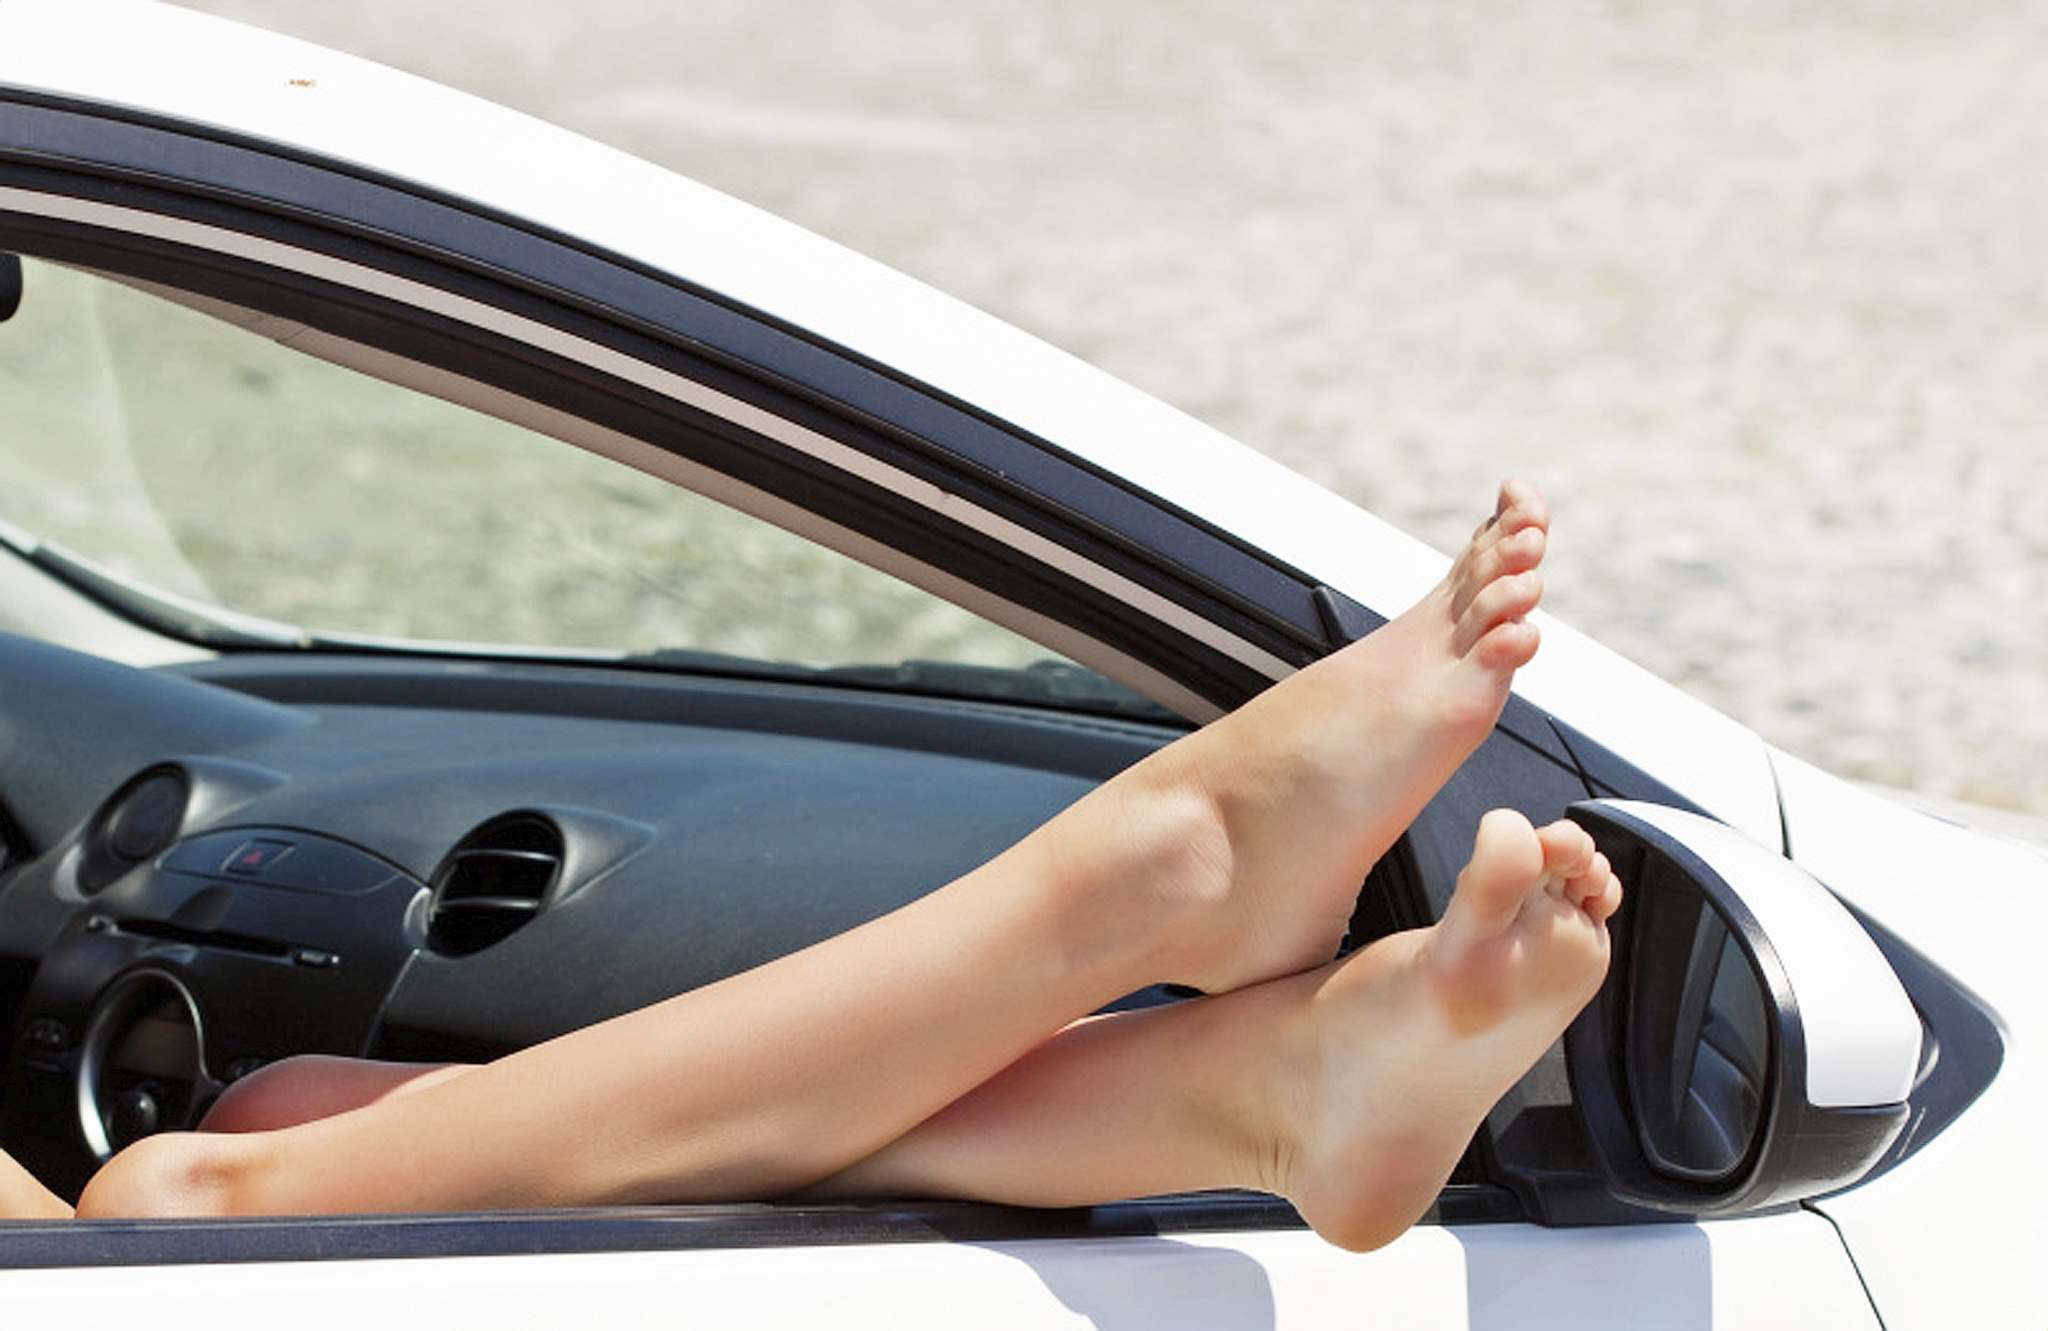 FotoliaPutting your feet up on or near the dash in a moving car is like playing Russian roulette with a fully loaded gun.